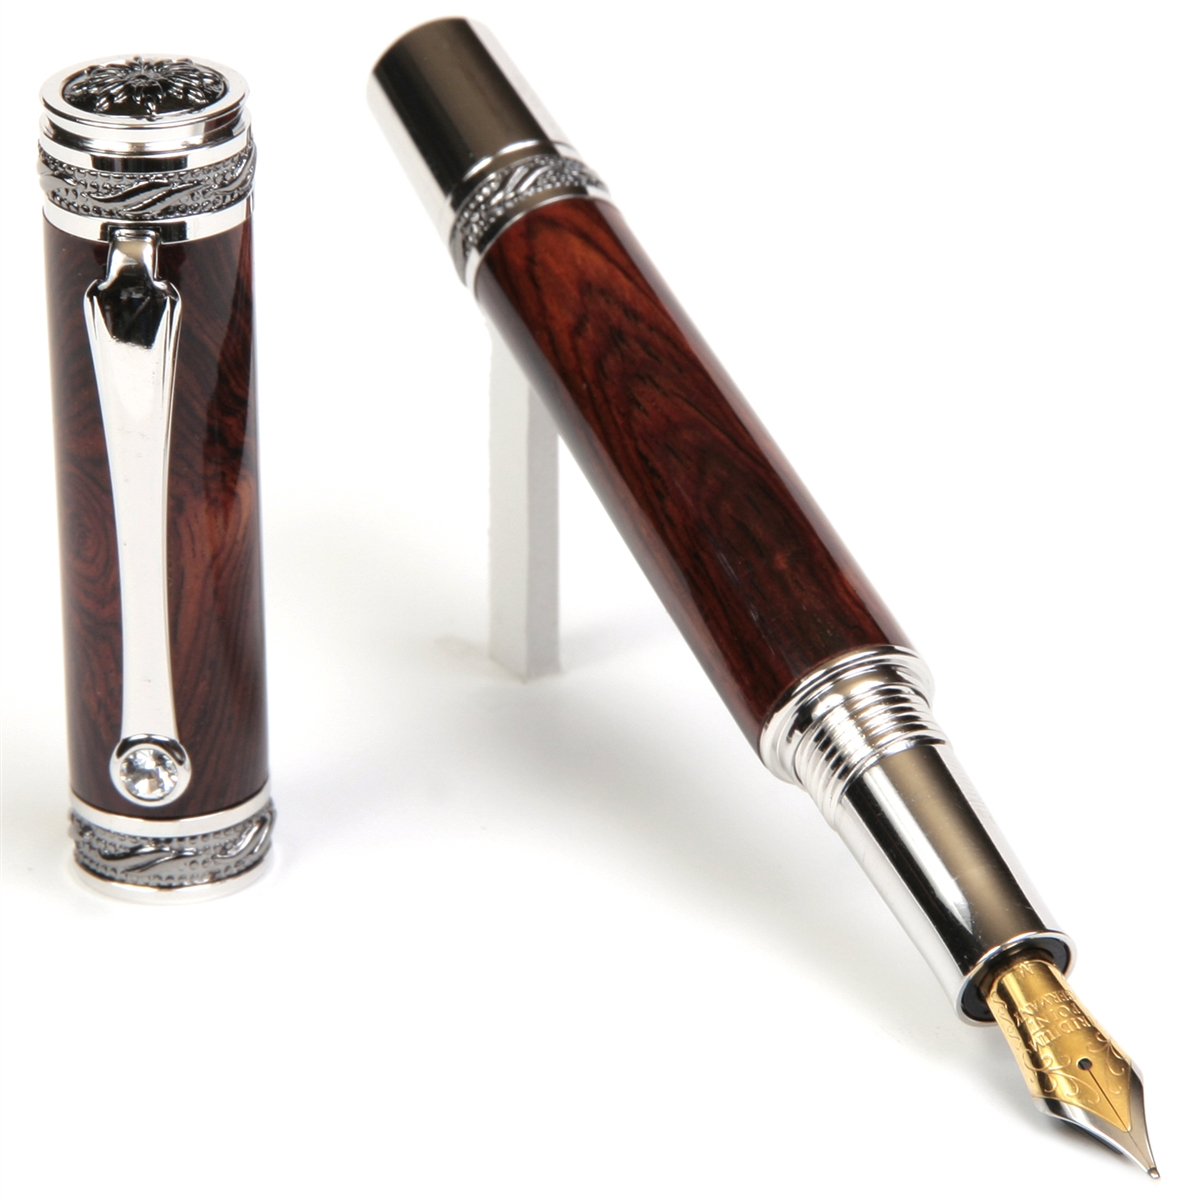 Majestic Fountain Pen - Cocobolo